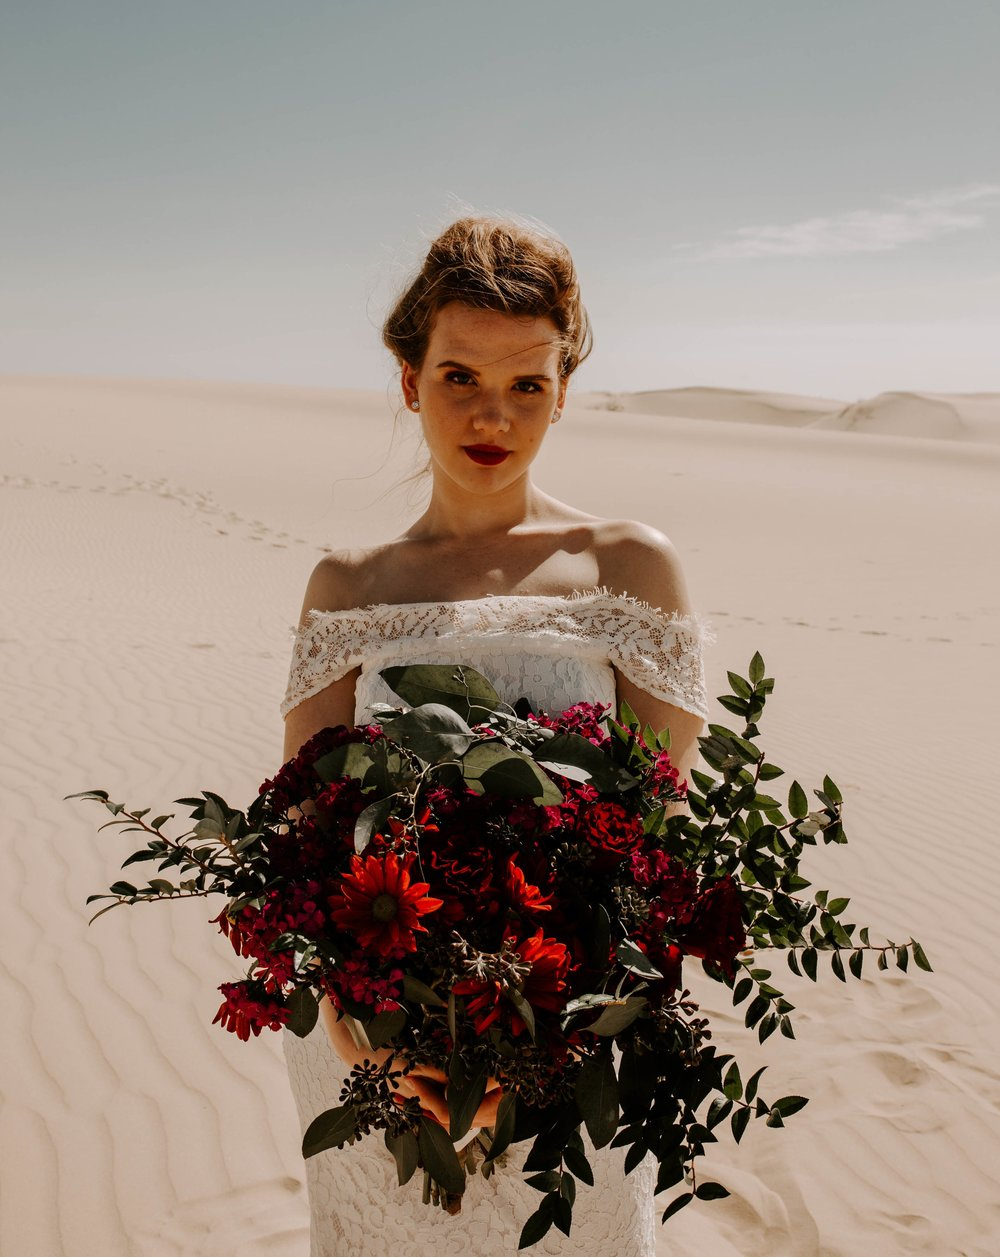 Let's Go On an Adventure - Got a bad case of wanderlust and an itch to travel? Thinking about doing a mini-destination wedding or elopement? I'm your girl, let's plan it together!